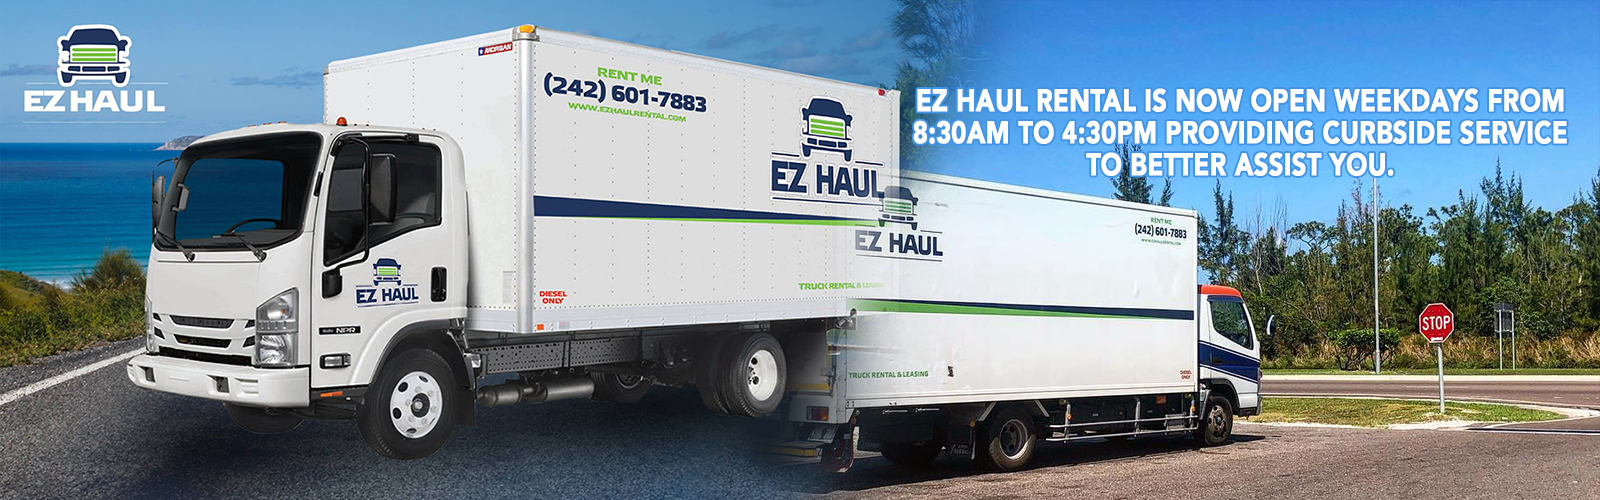 EZ Haul Rental is now open weekdays from 8:30am to 4:30pm providing curbside service to better assist you.